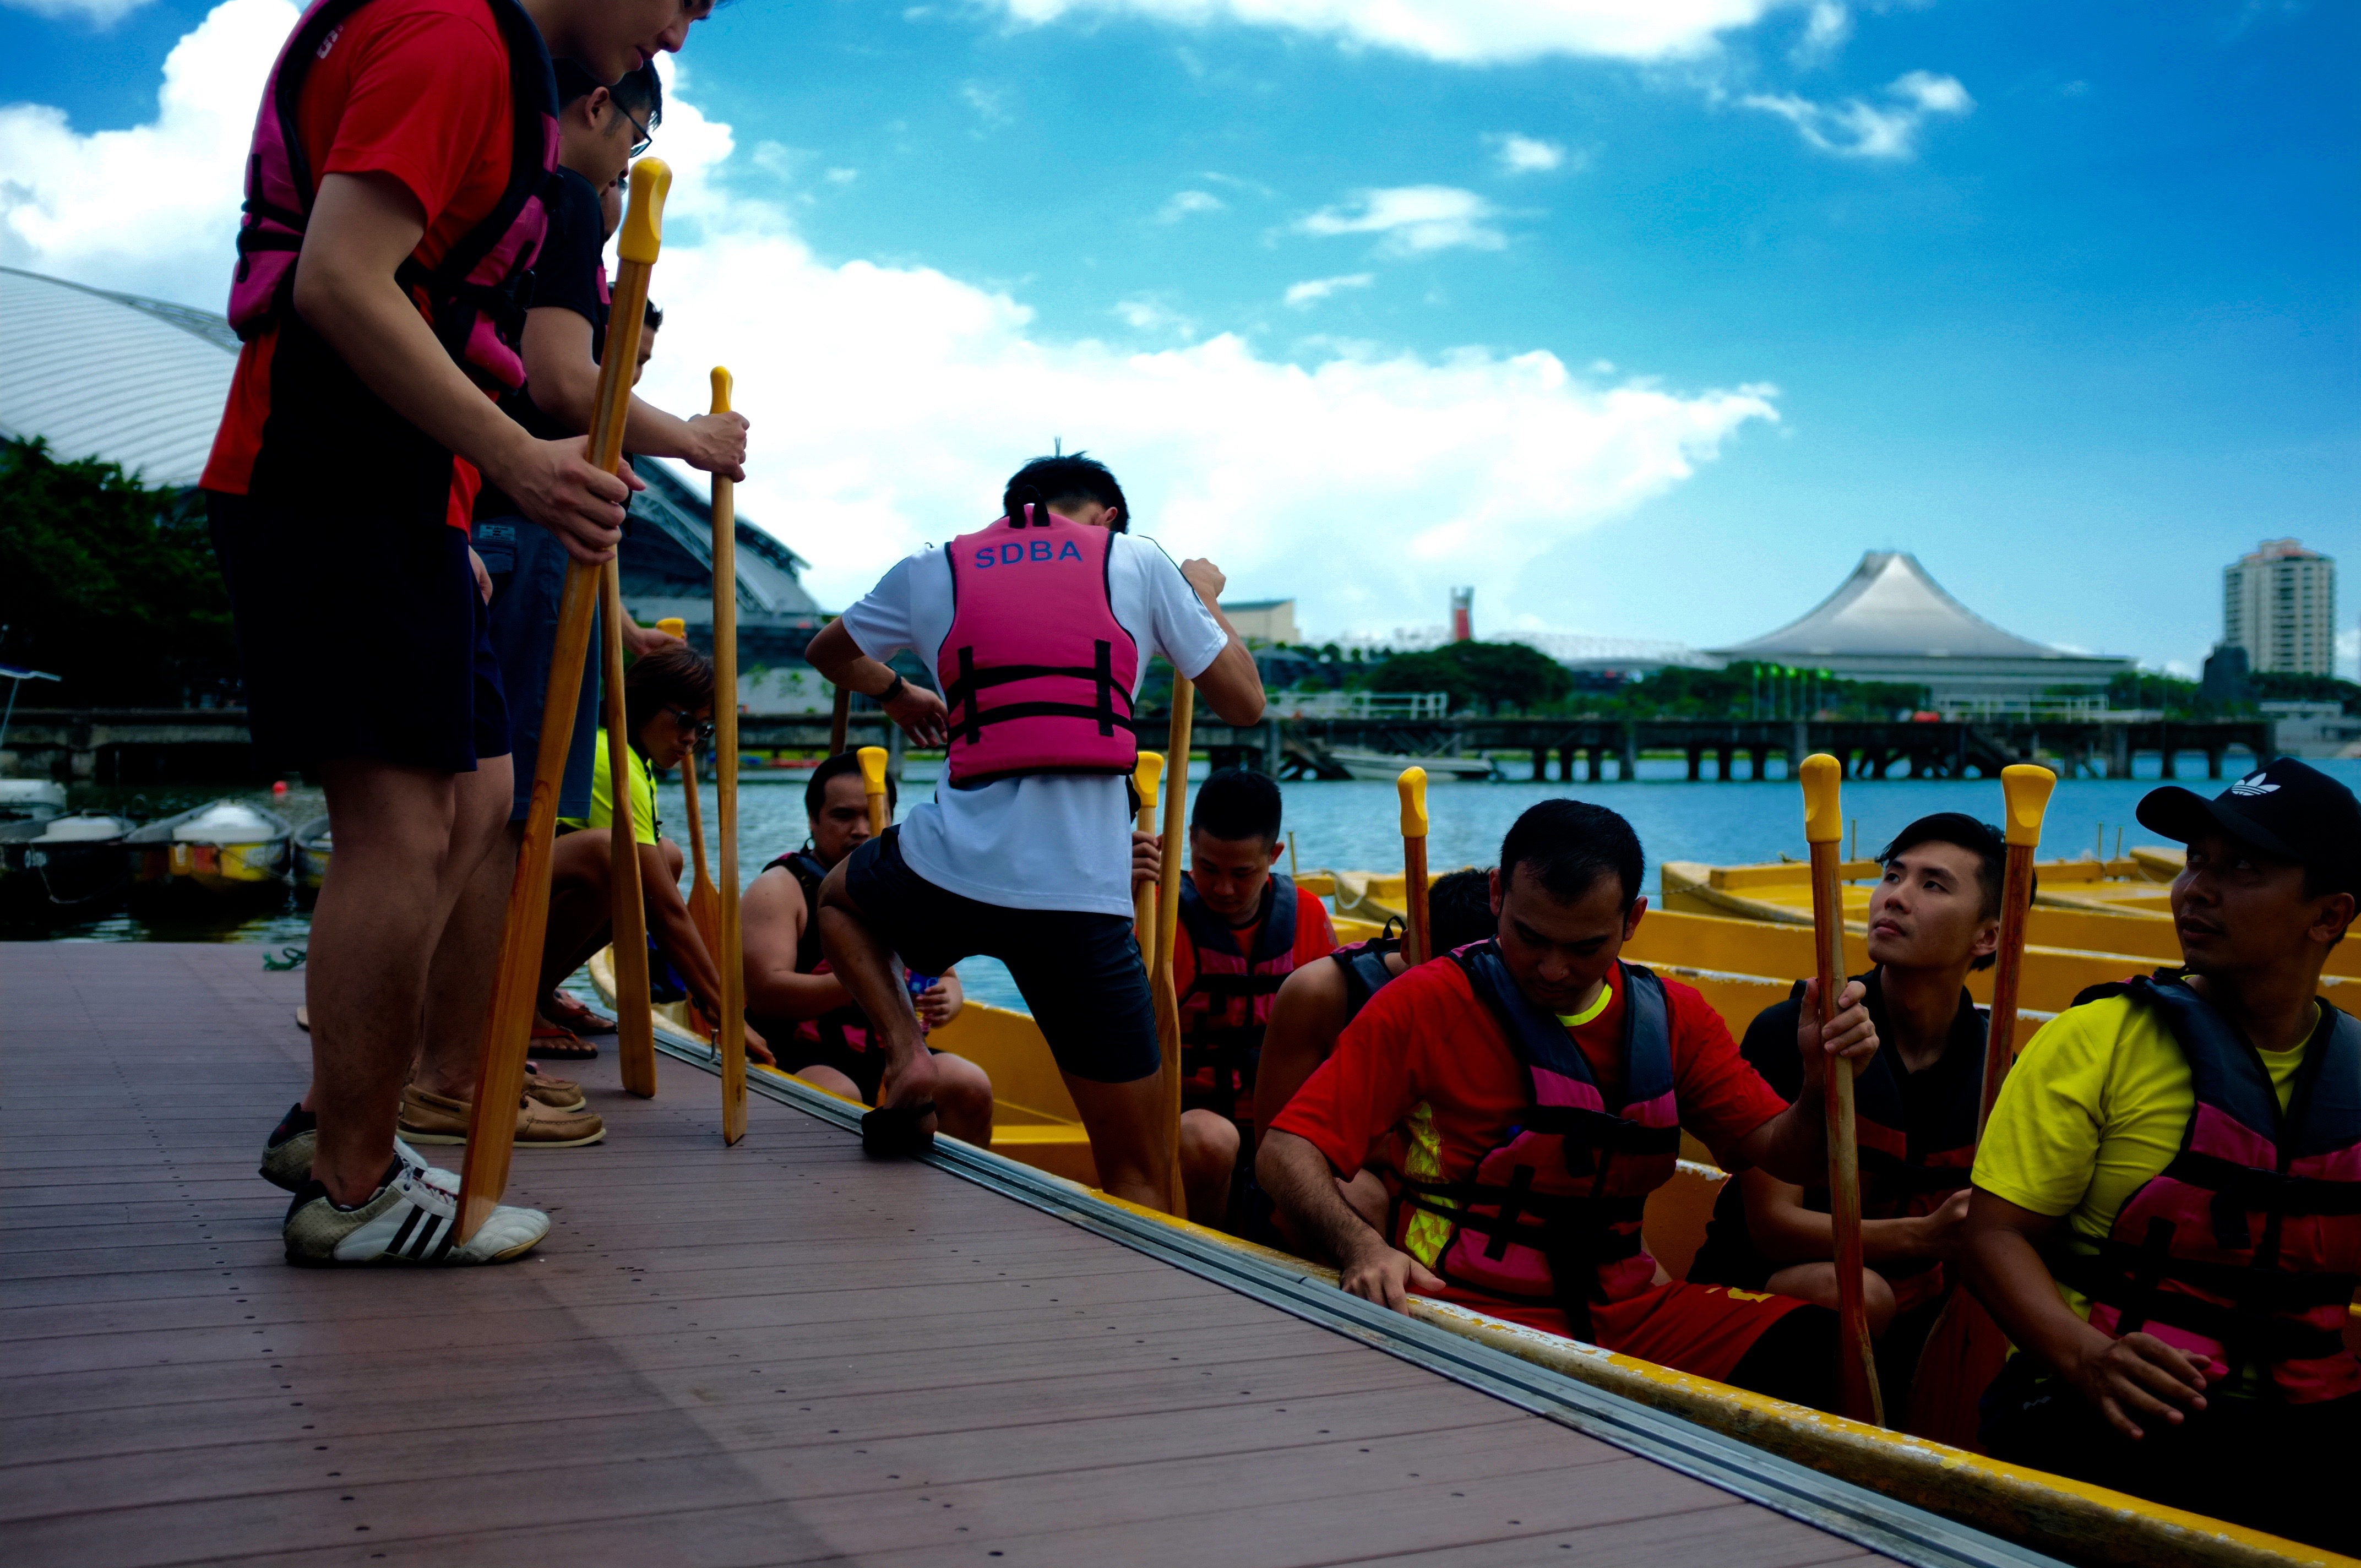 Suitable for corporate groups team building and bonding activities and ideas